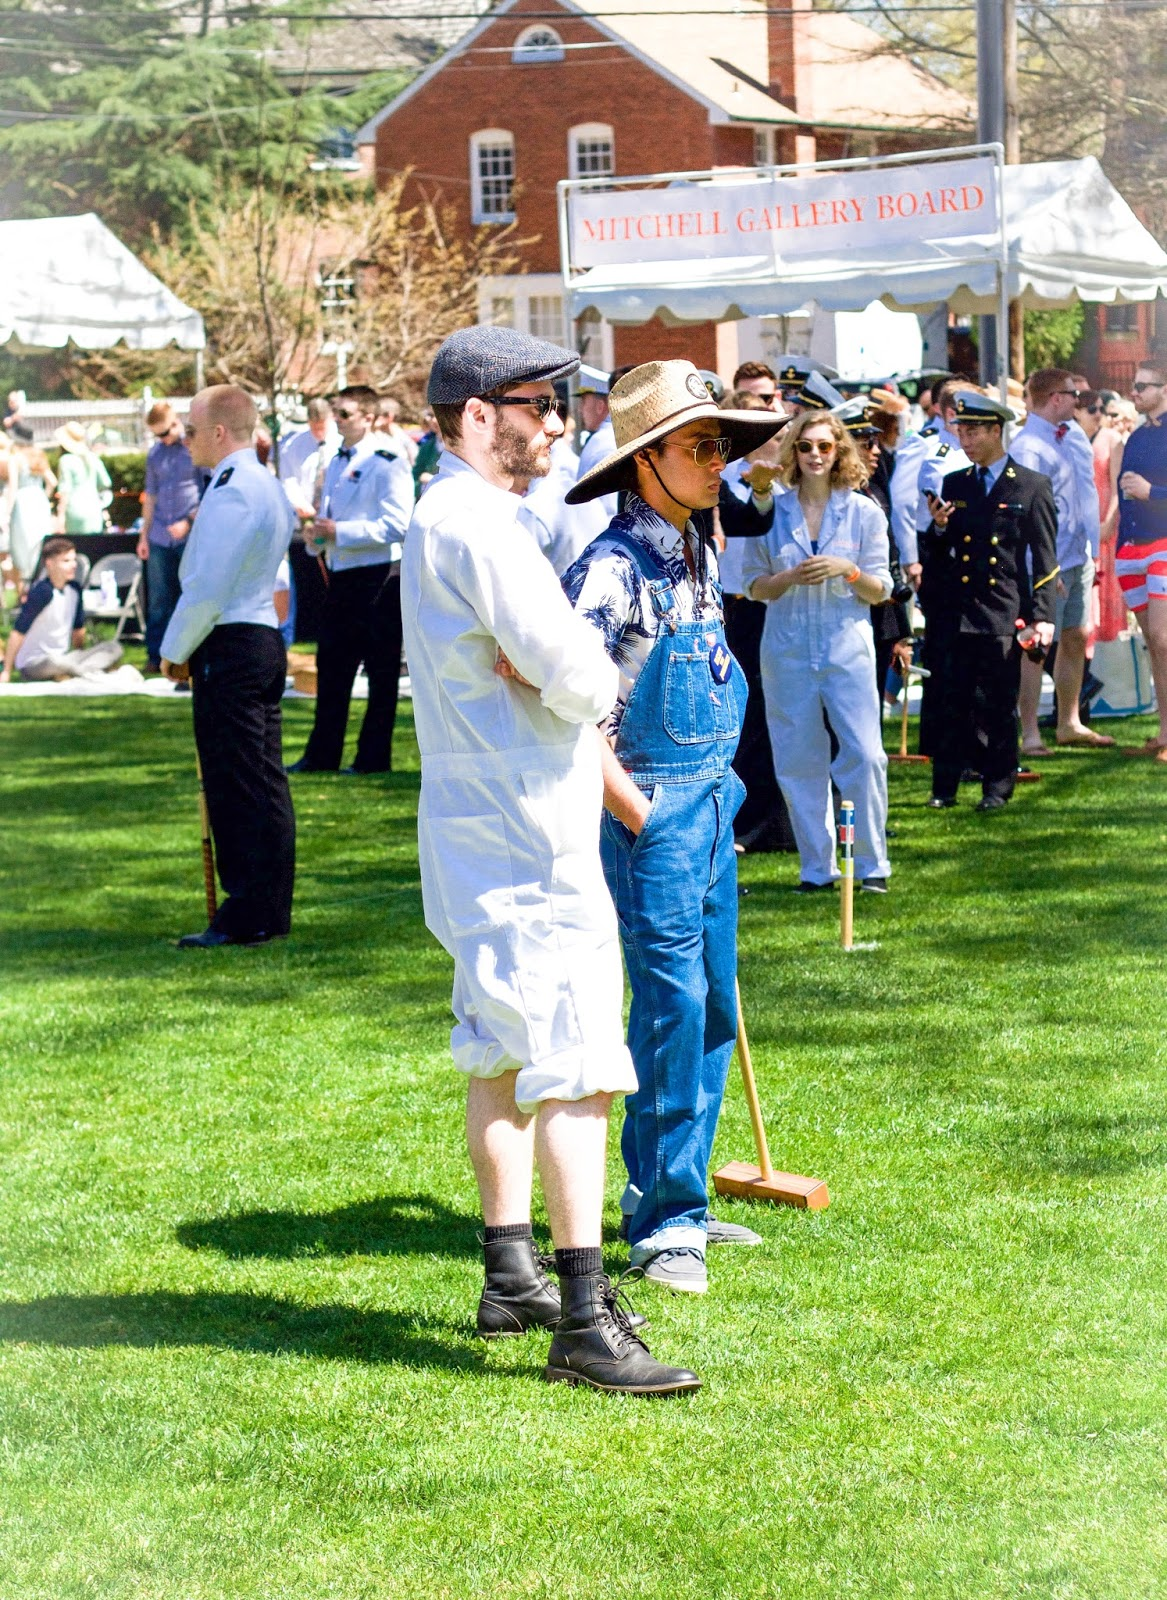 72a6bfc4f344 Below are some of my favorite pictures from our Day of Croquet: